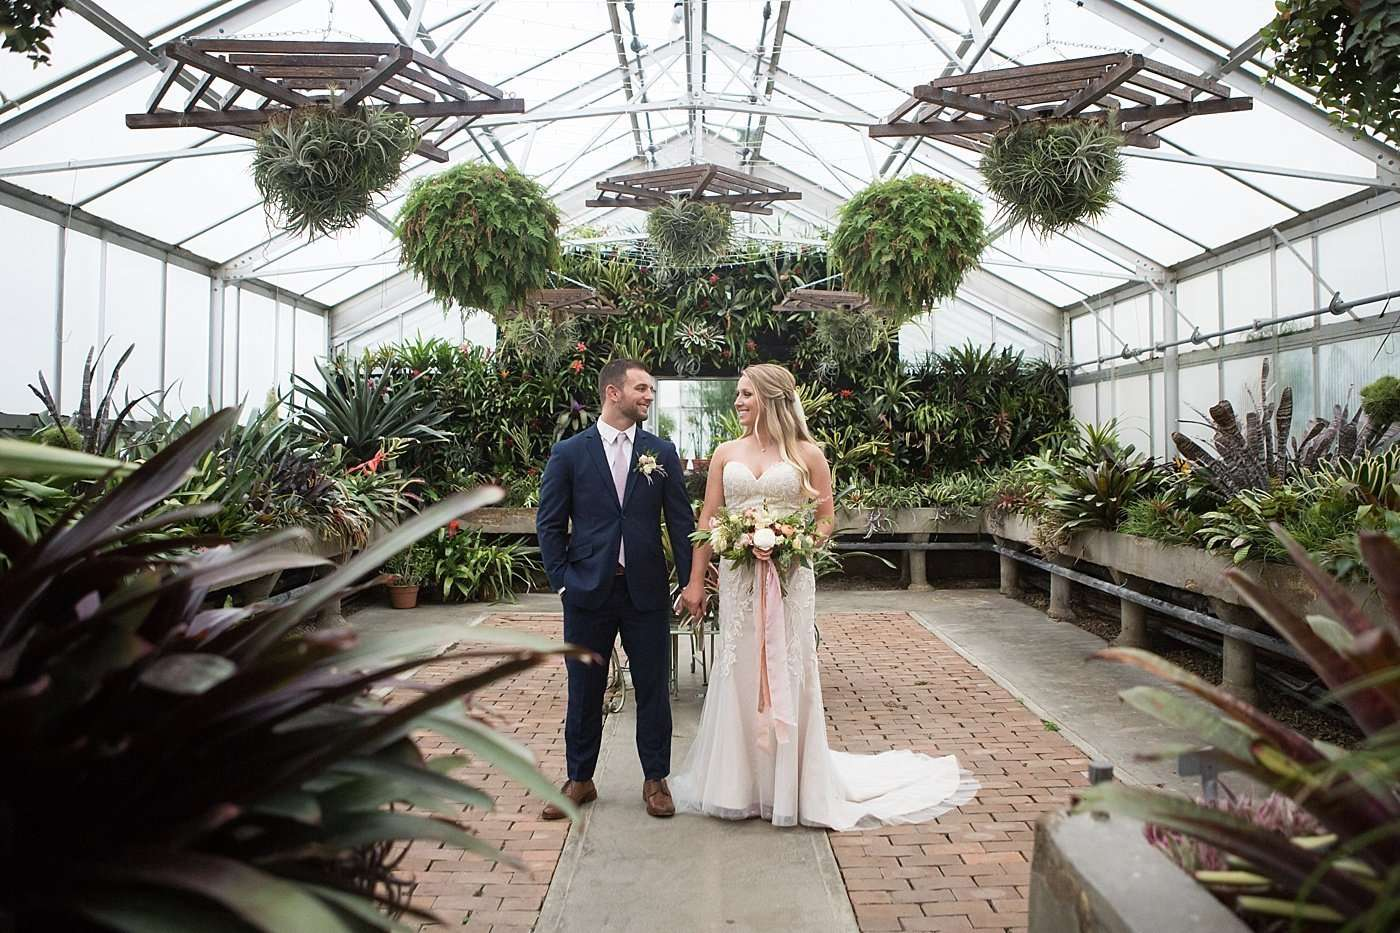 A newly married bride and groom hold hands inside a greenhouse full of lush plants